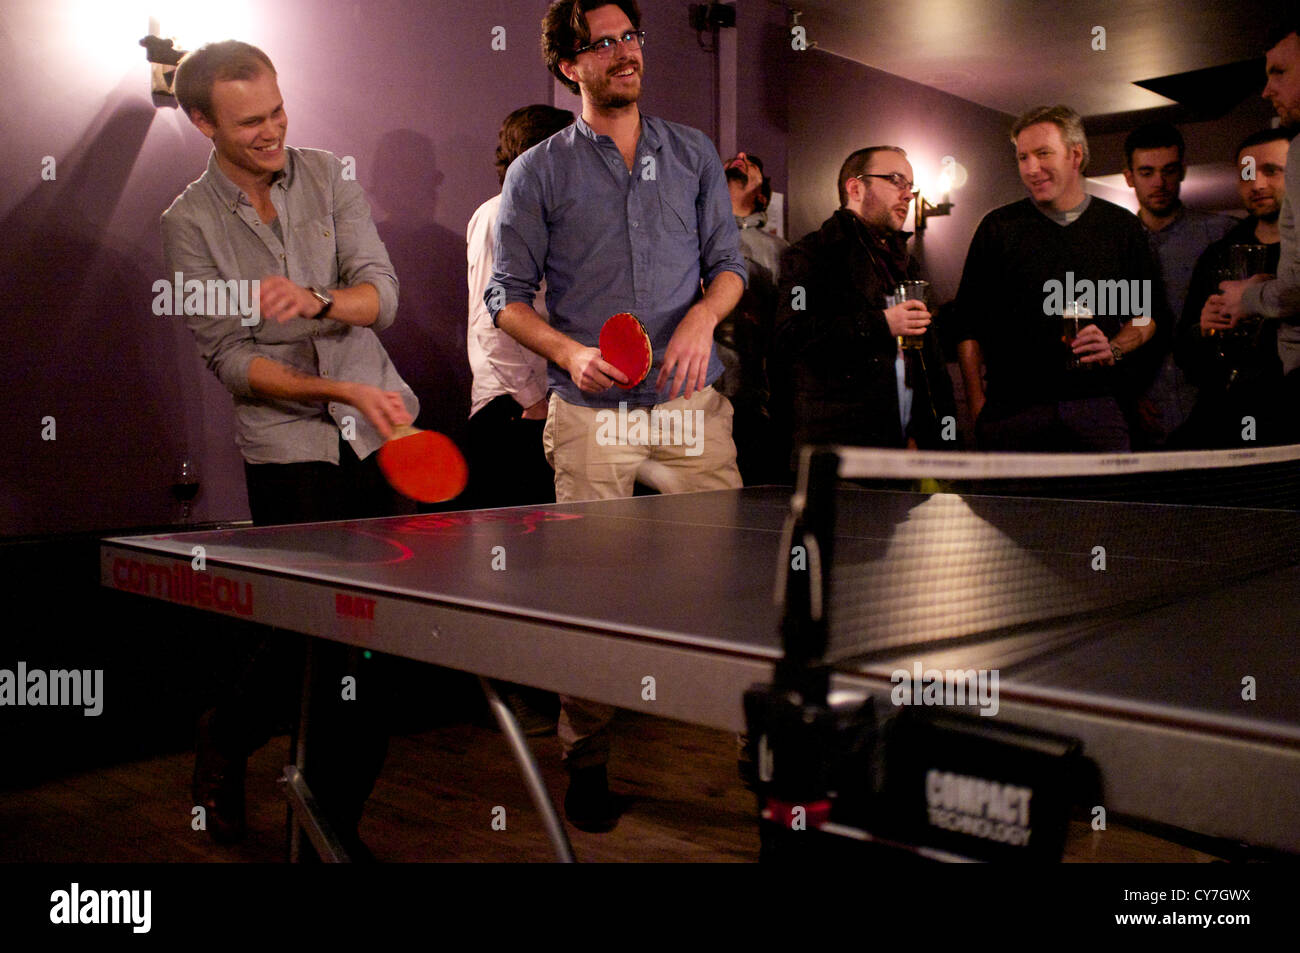 Bearded man playing table tennis in a pub in the trendy Clerkenwell area of London. - Stock Image